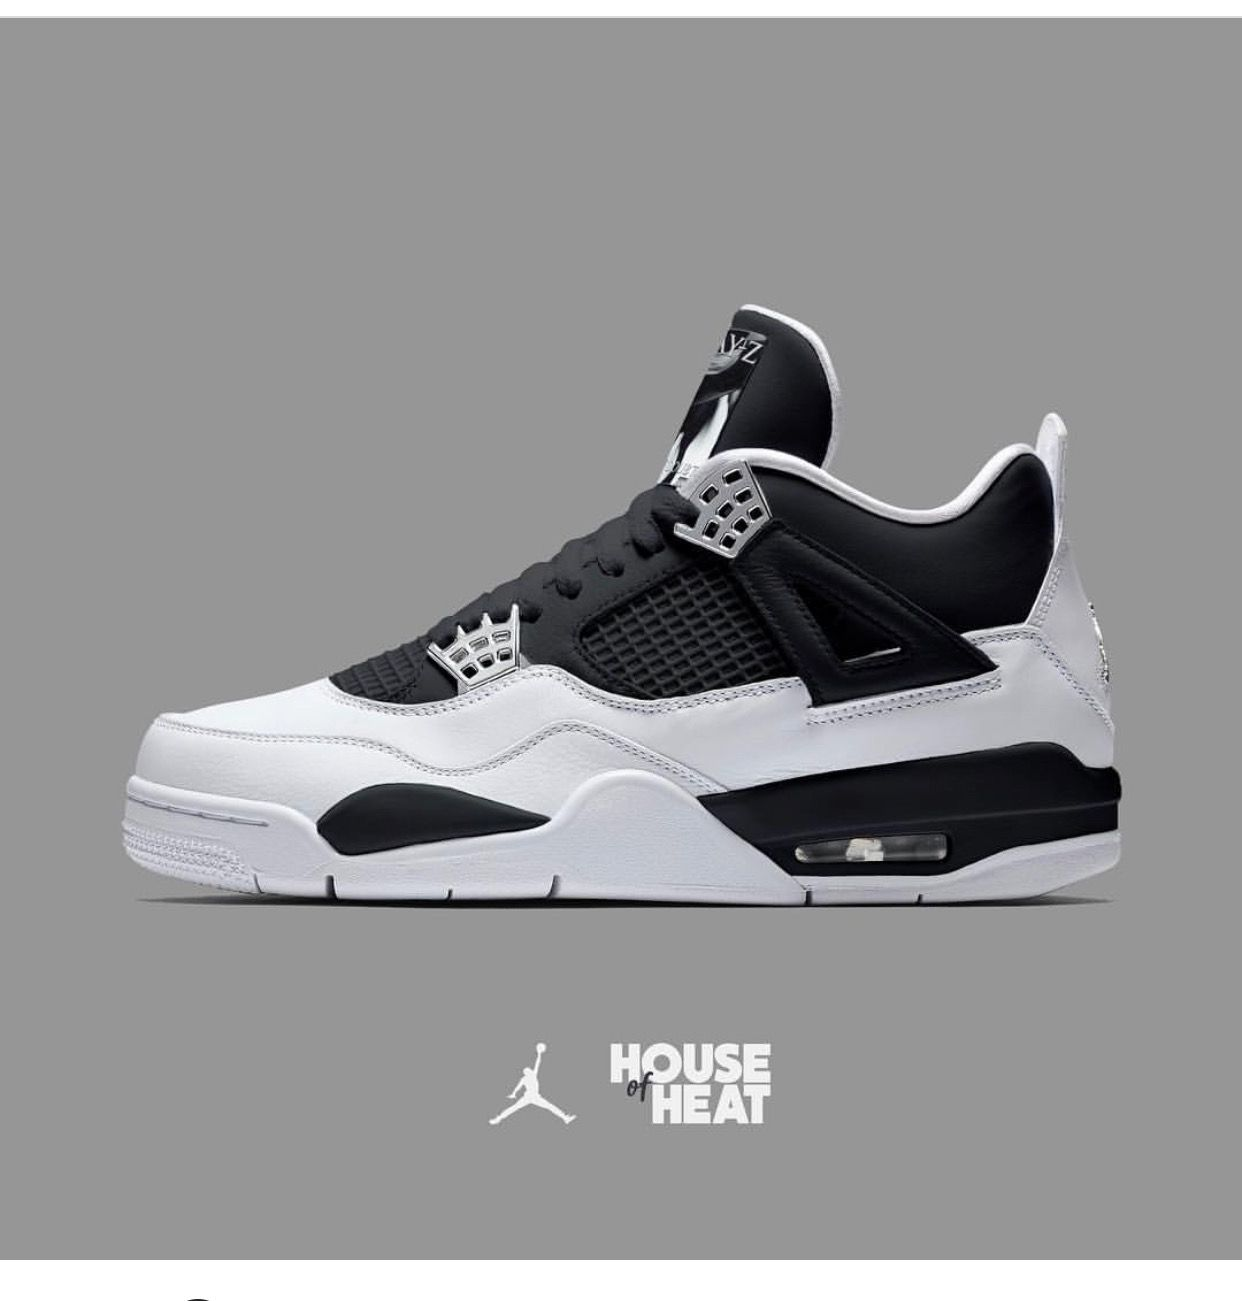 a39fa01a6419 Waiting for these to come out... Summertime 2018....